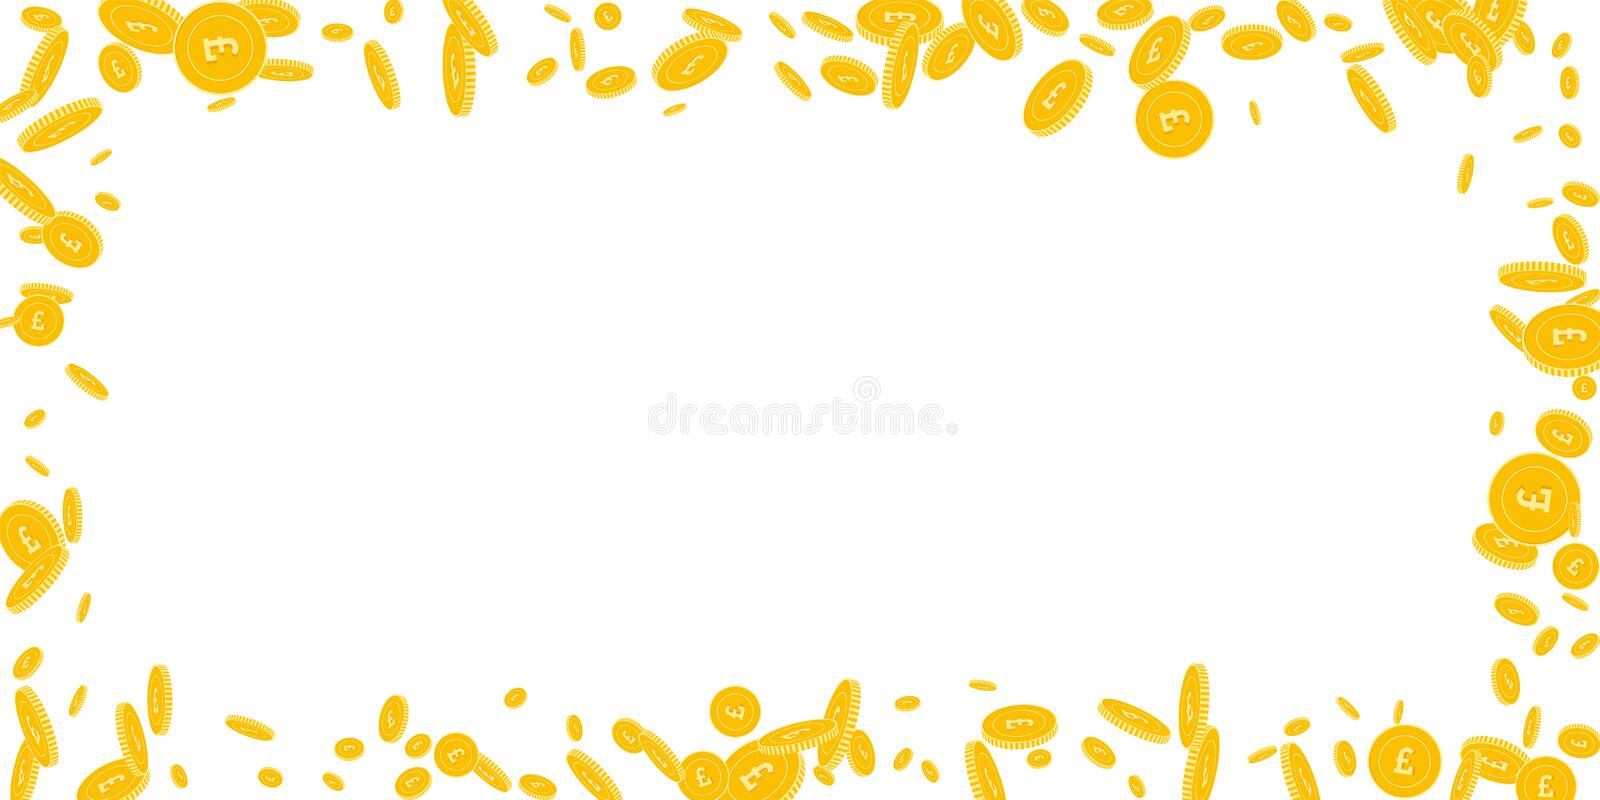 British pound coins falling. Scattered disorderly. GBP coins on white background. Nice wide scattered frame vector illustration. Jackpot or success concept royalty free illustration